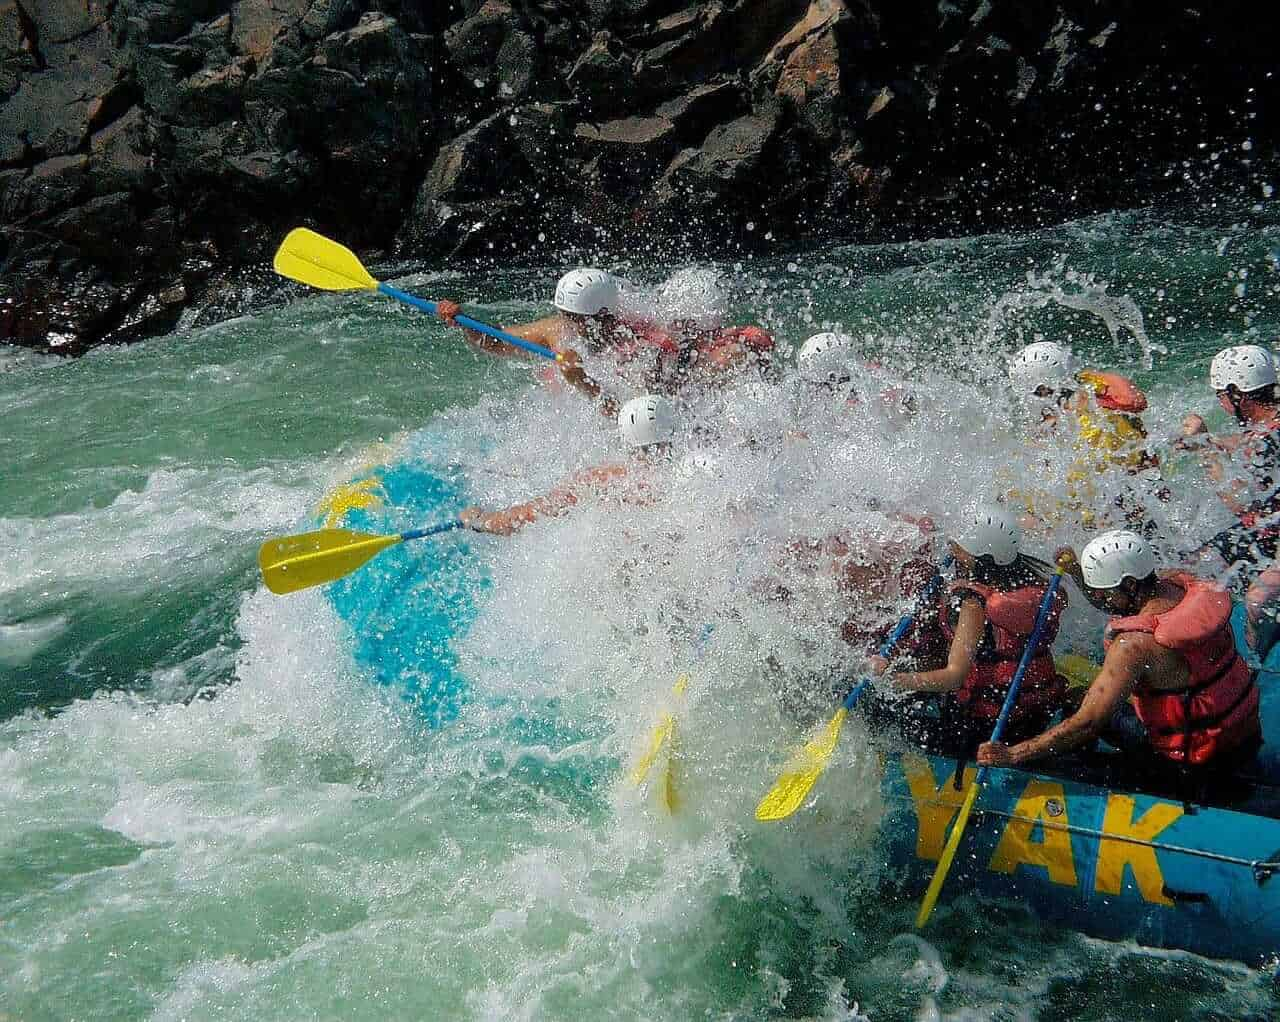 White water river-rafting